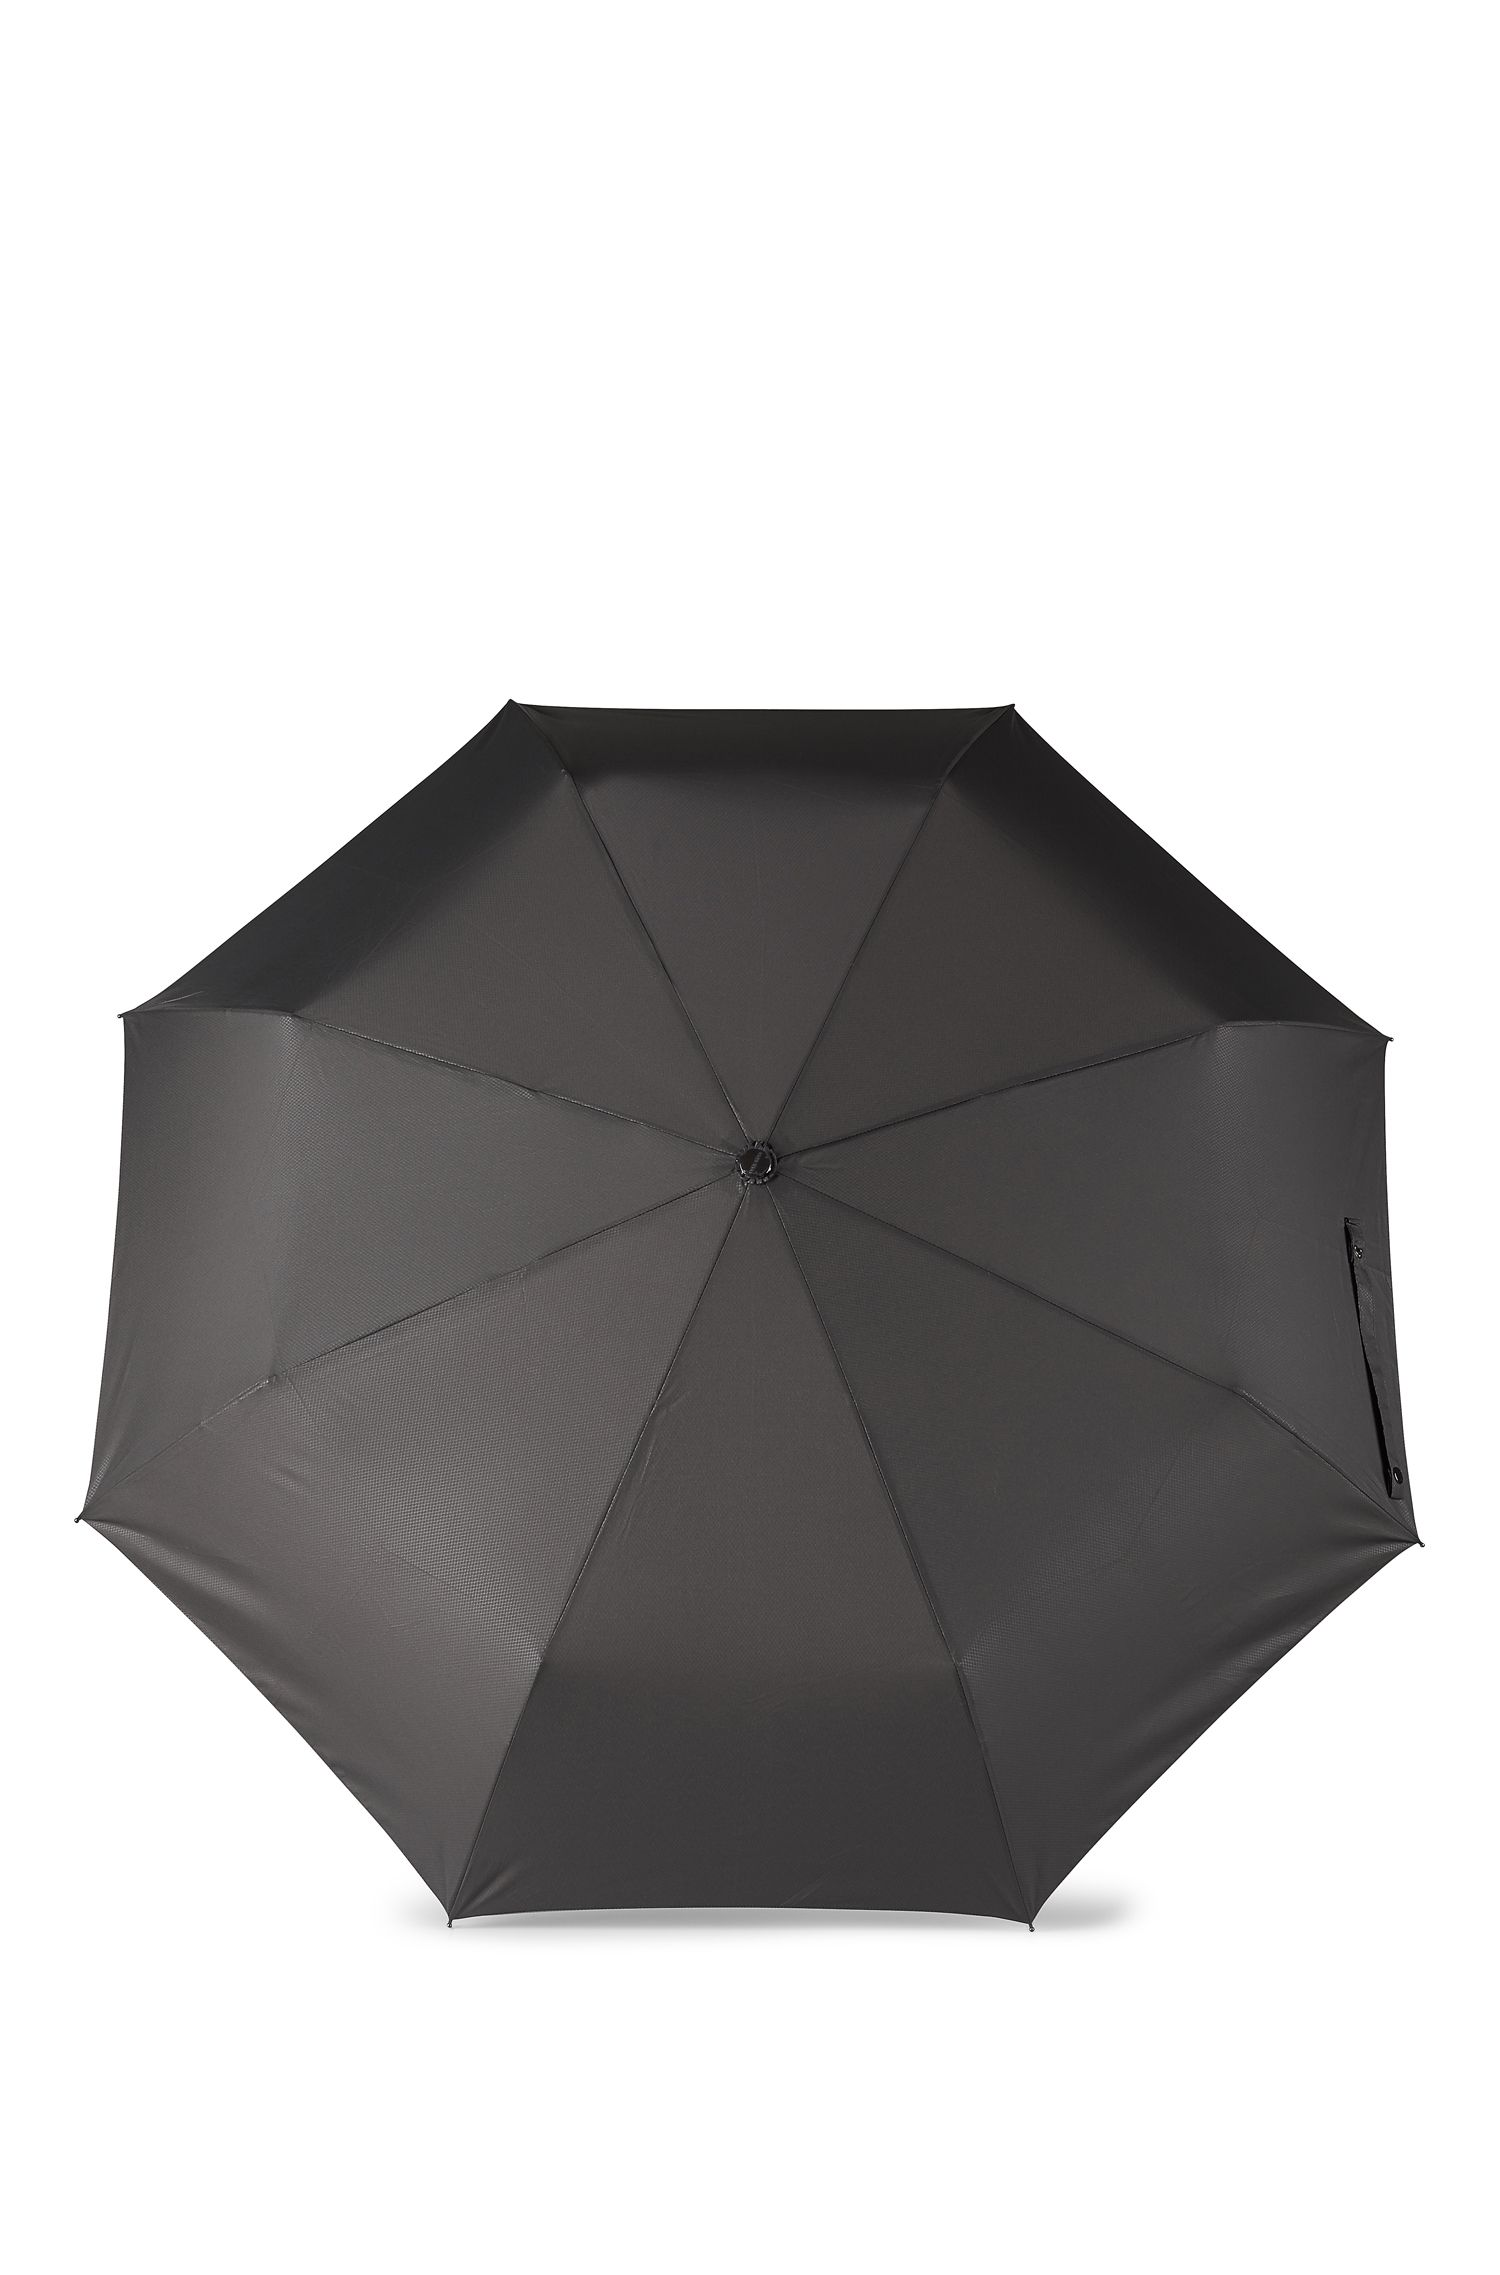 Aluminum Frame Patterned Pocket Umbrella | Umbrella New Loop Dark, Grey